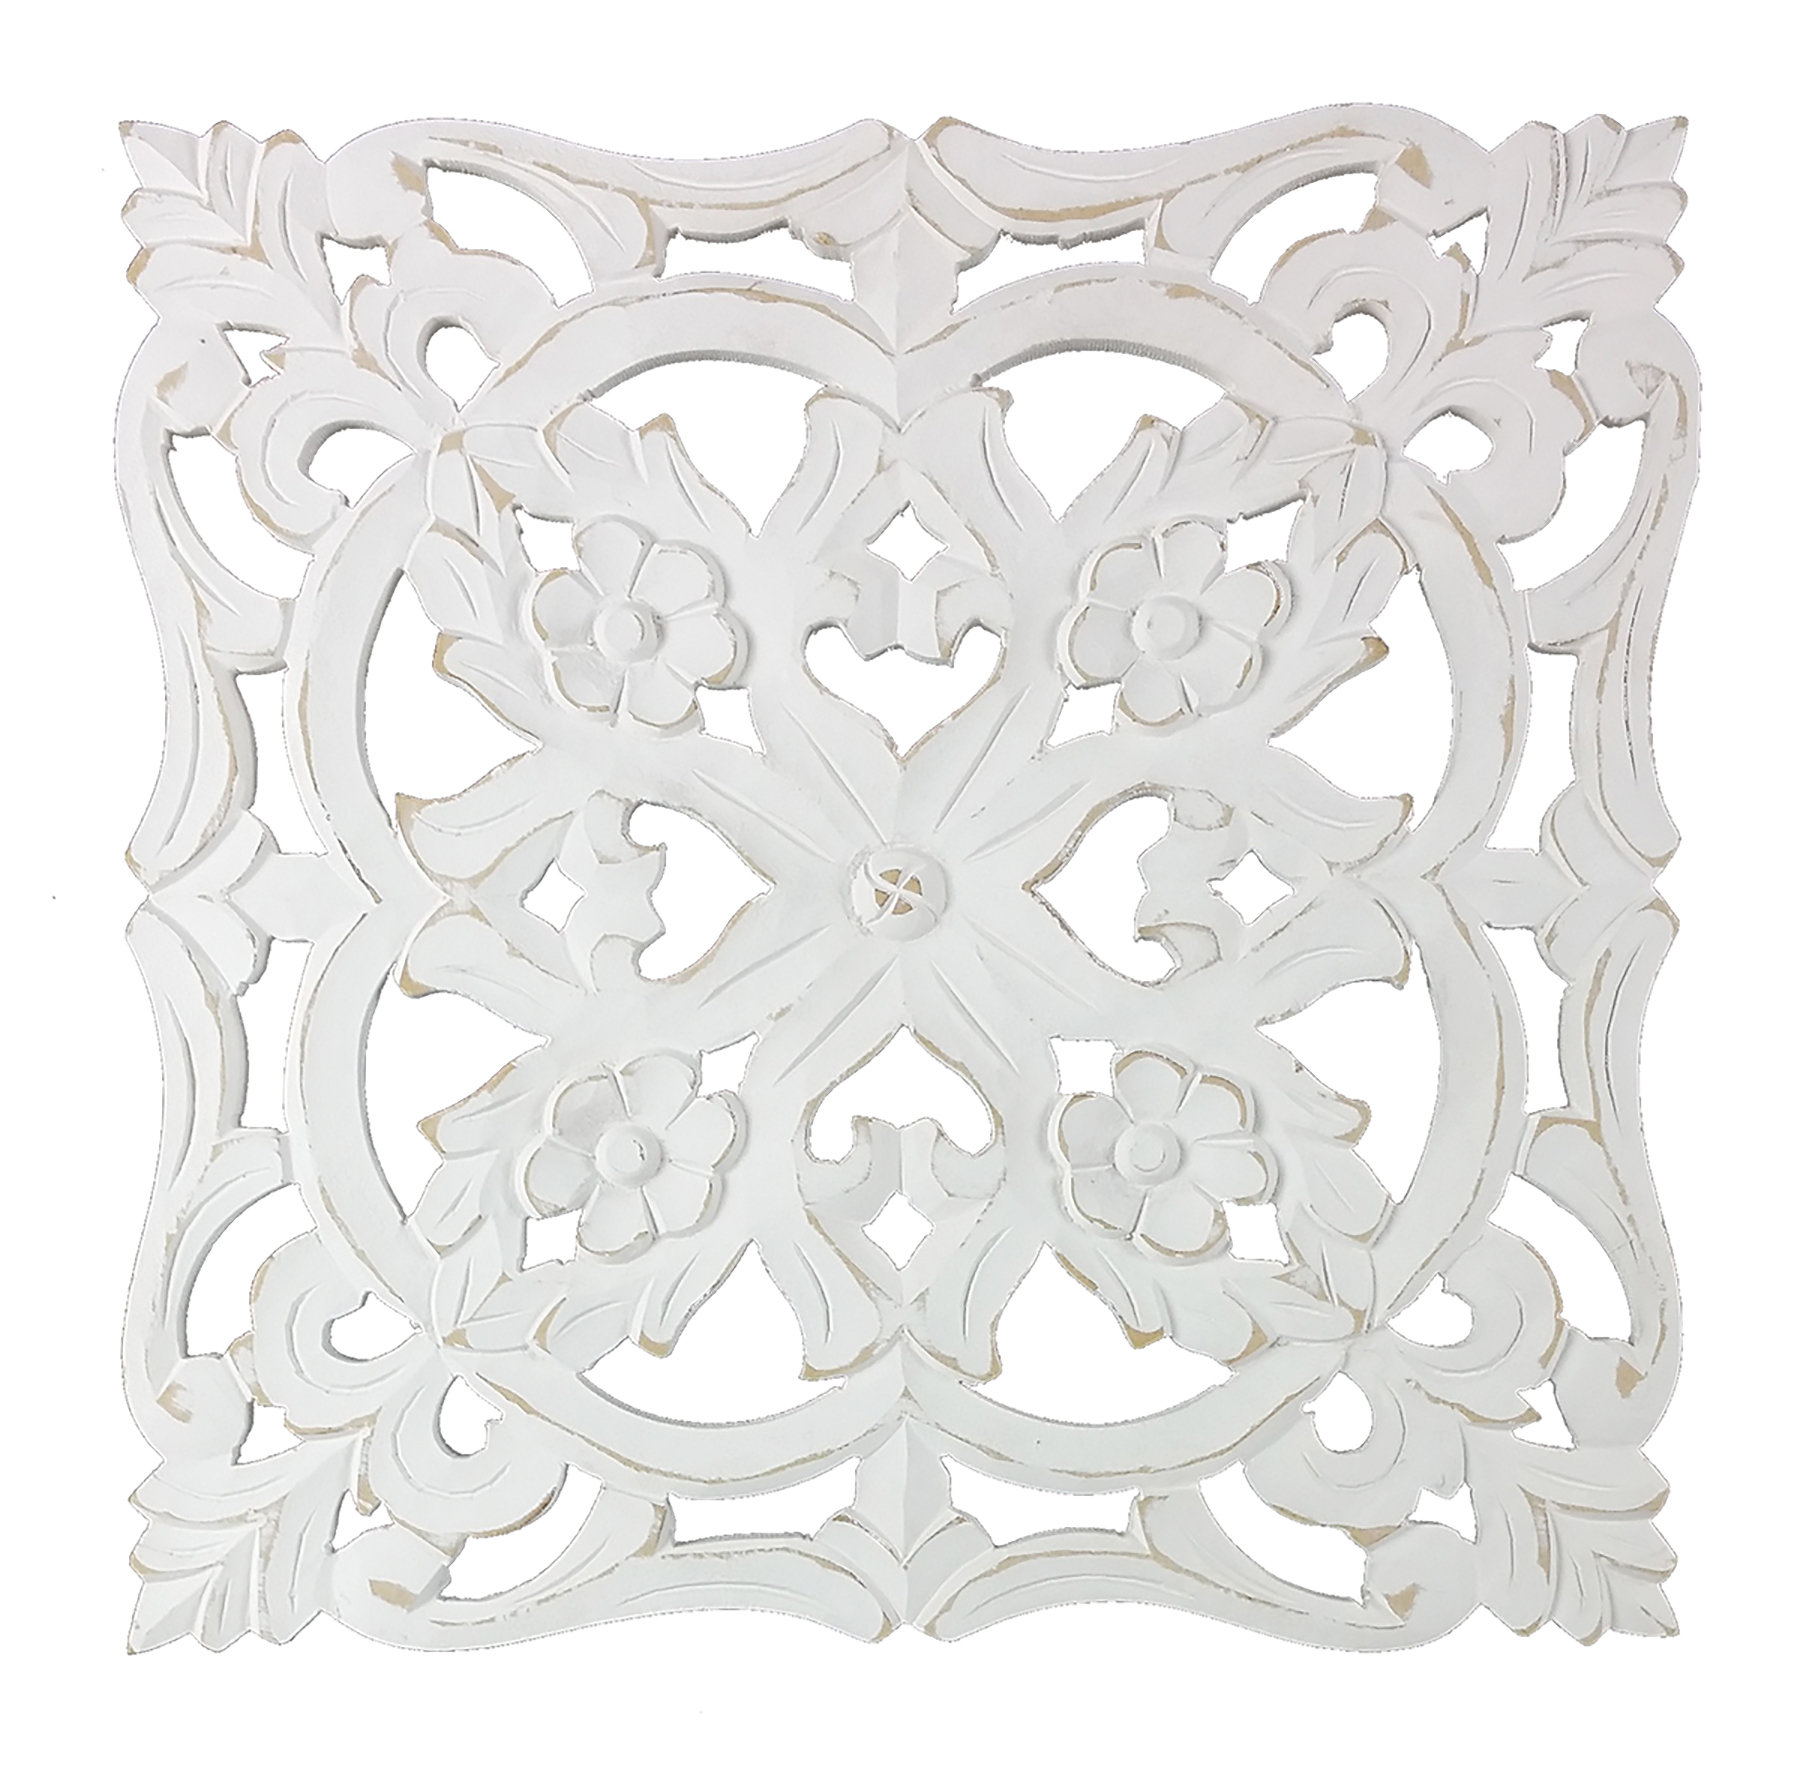 Medallion Wall Decor | Wayfair in Small Medallion Wall Decor (Image 11 of 30)